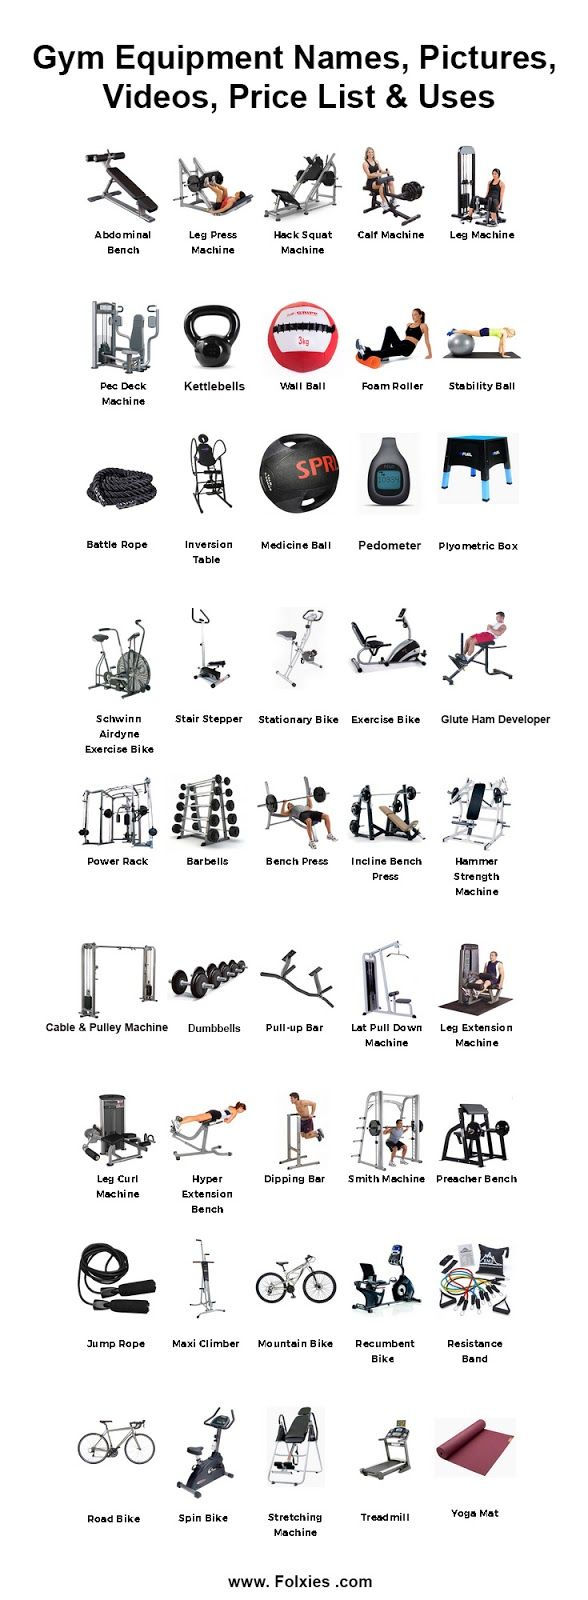 Gym Equipment Names Pictures Videos Price List And Uses